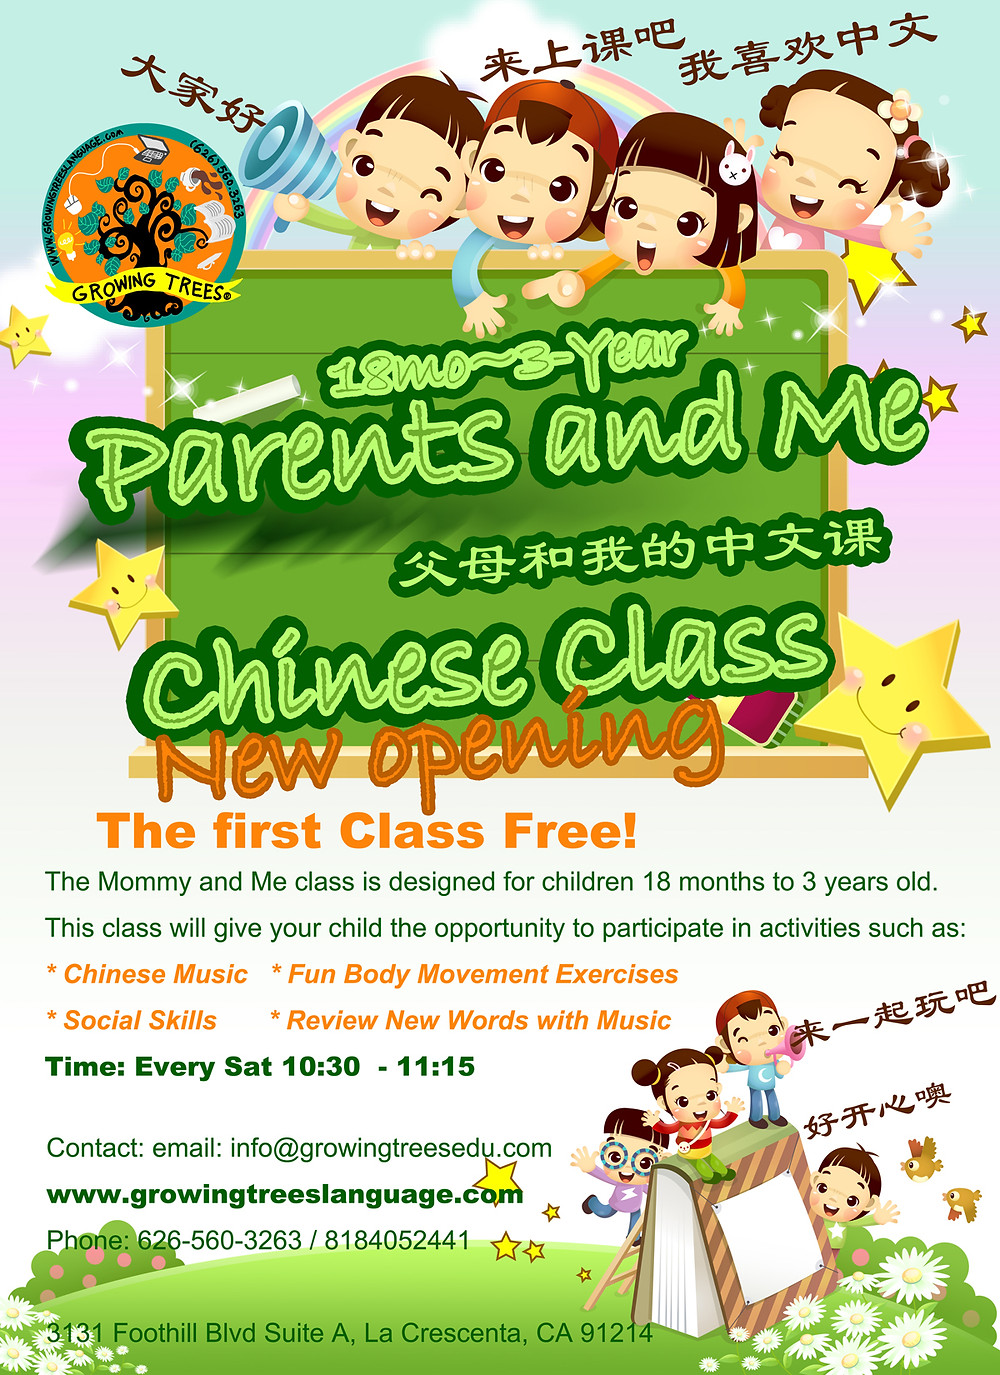 The Mommy and Me class is designed for children ages 18 months to 3 years.